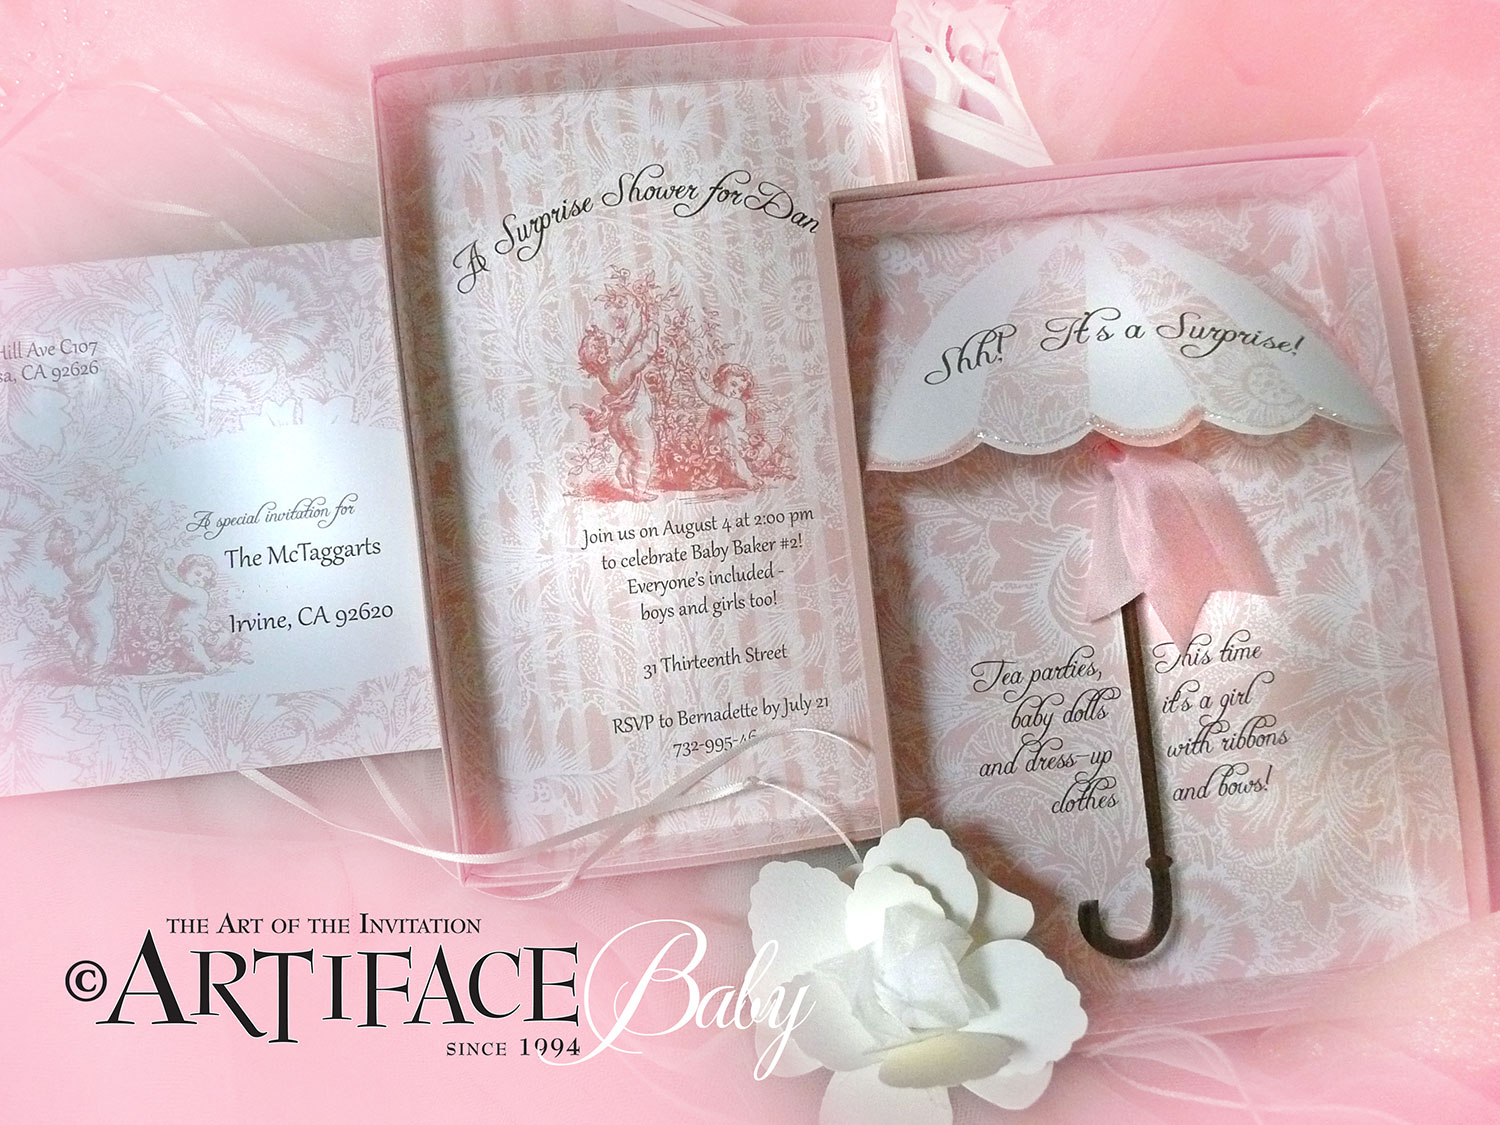 tangé design custom wedding invitations weddings birthdays baby